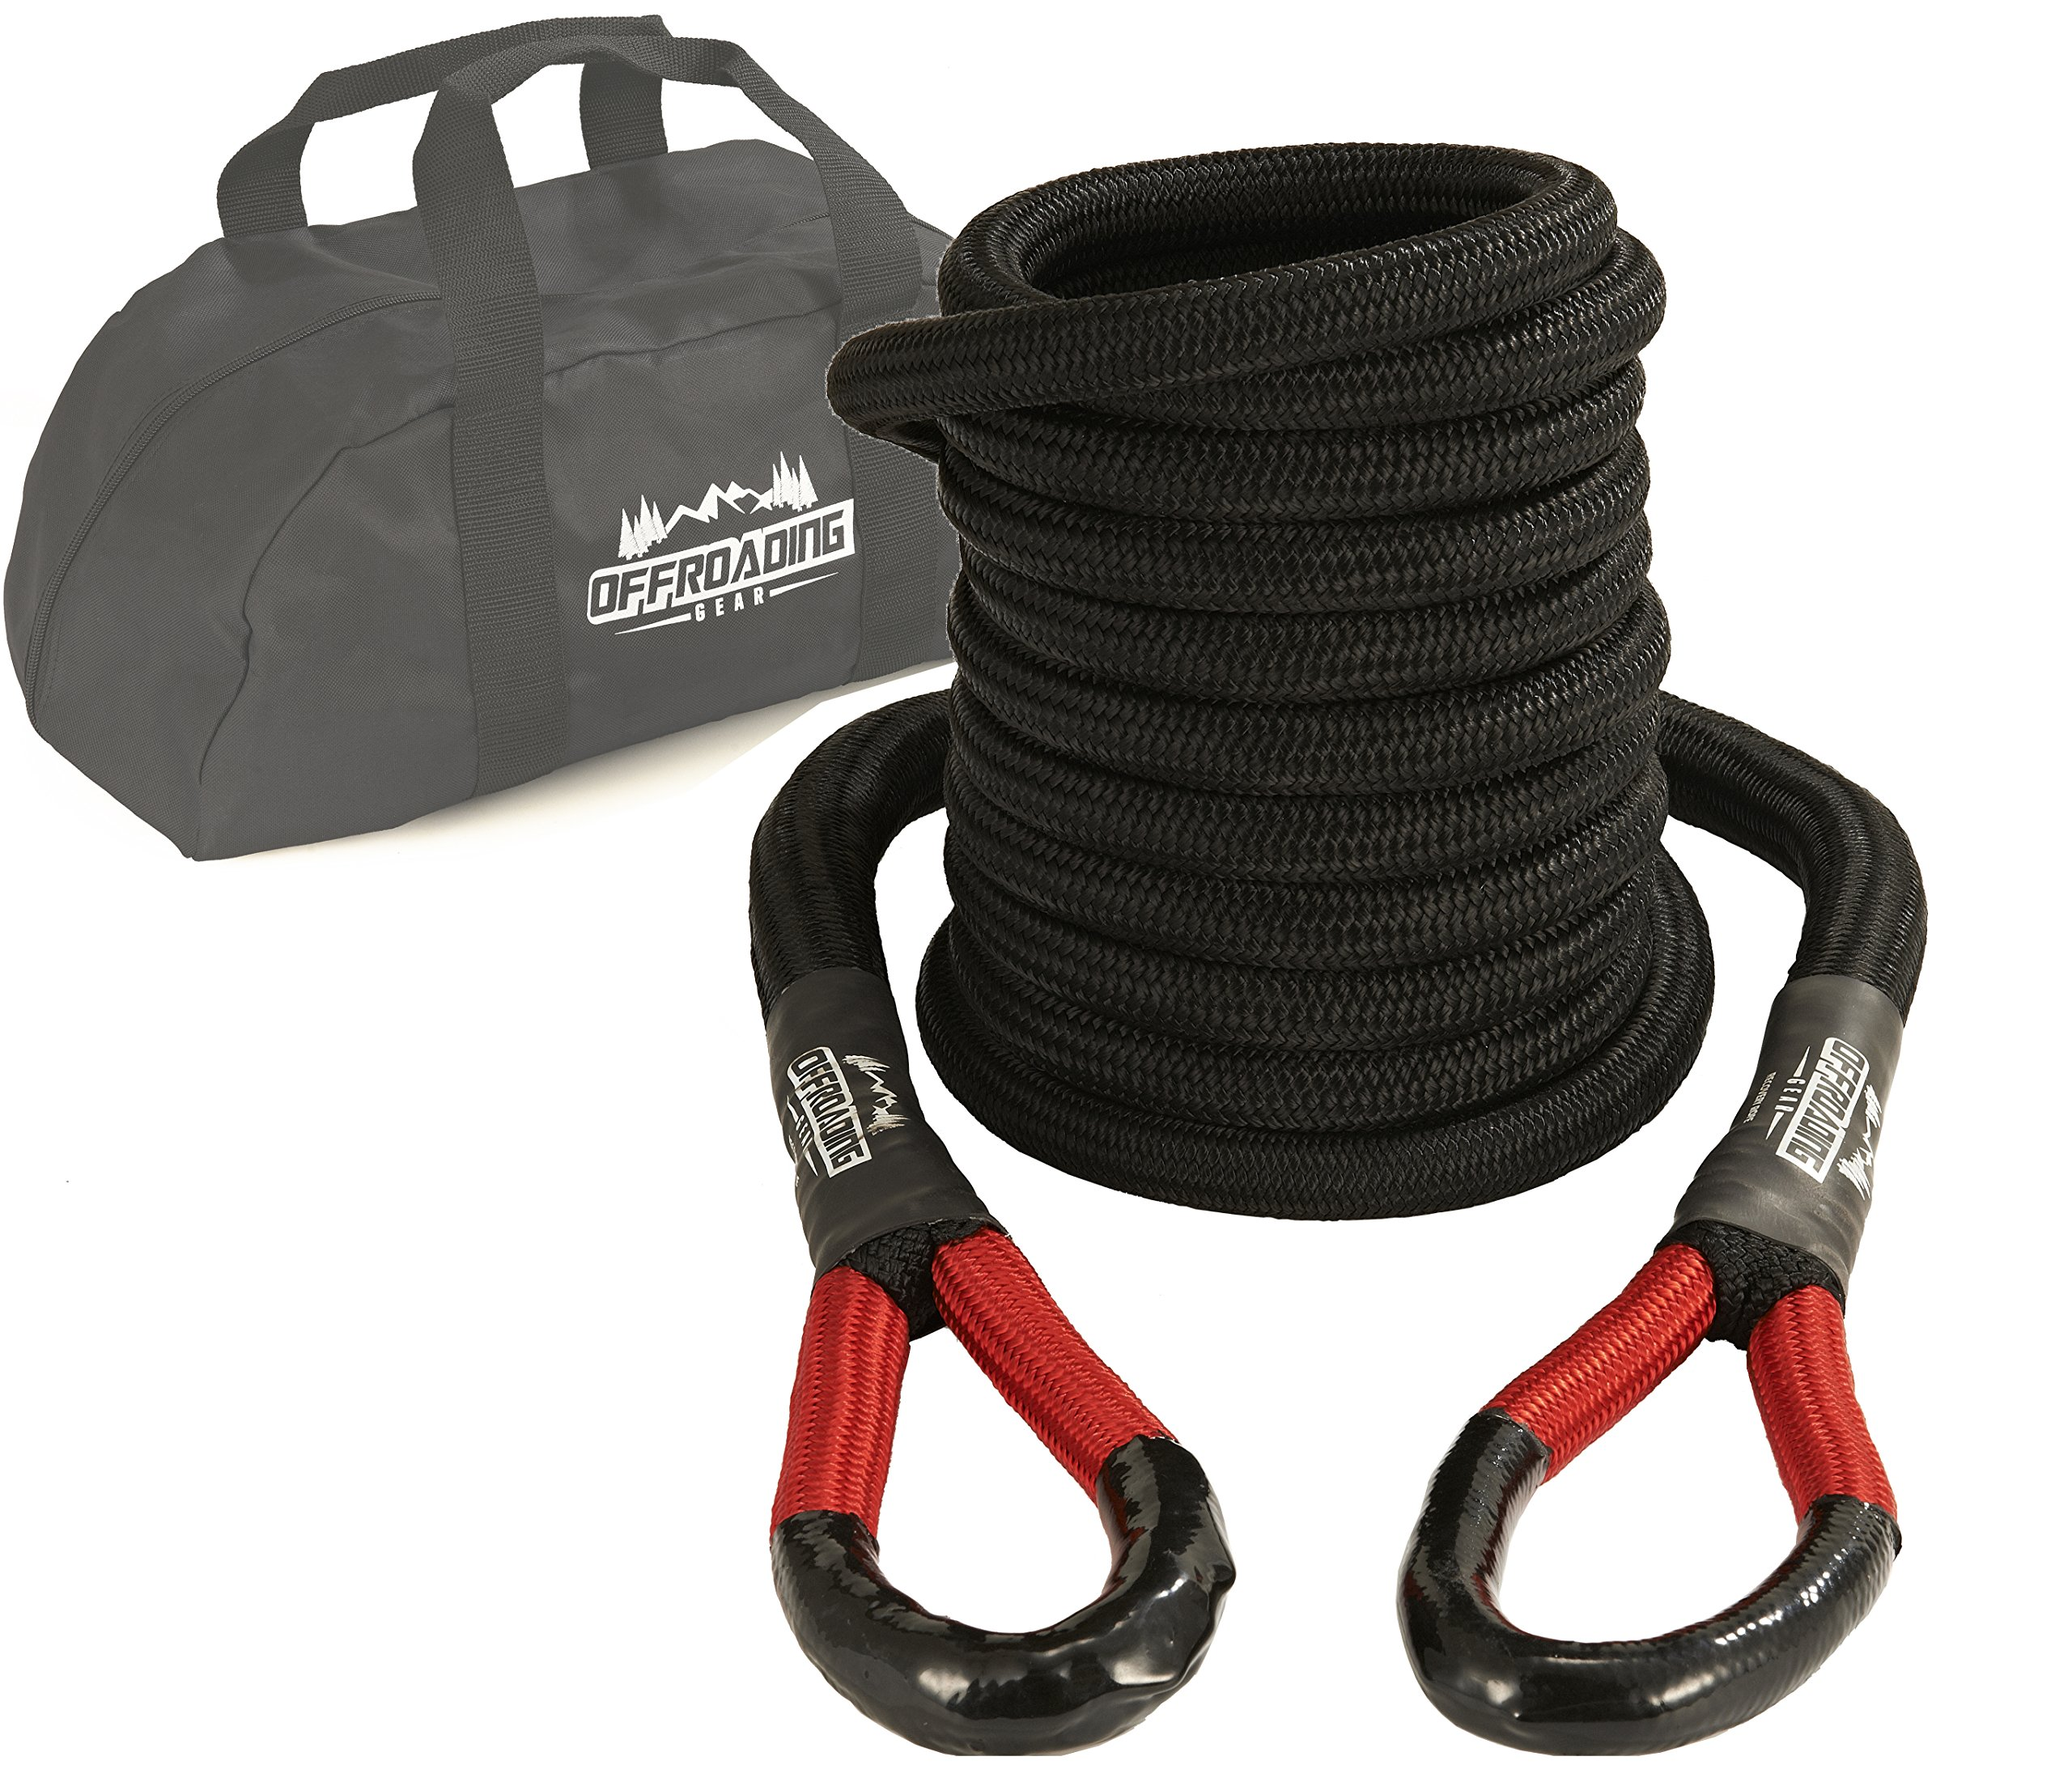 20'x3/4'' Kinetic Recovery & Tow Rope, Black (19000 lbs) - for 4x4/Off-Roading/Jeep/Car/SUV/ATV